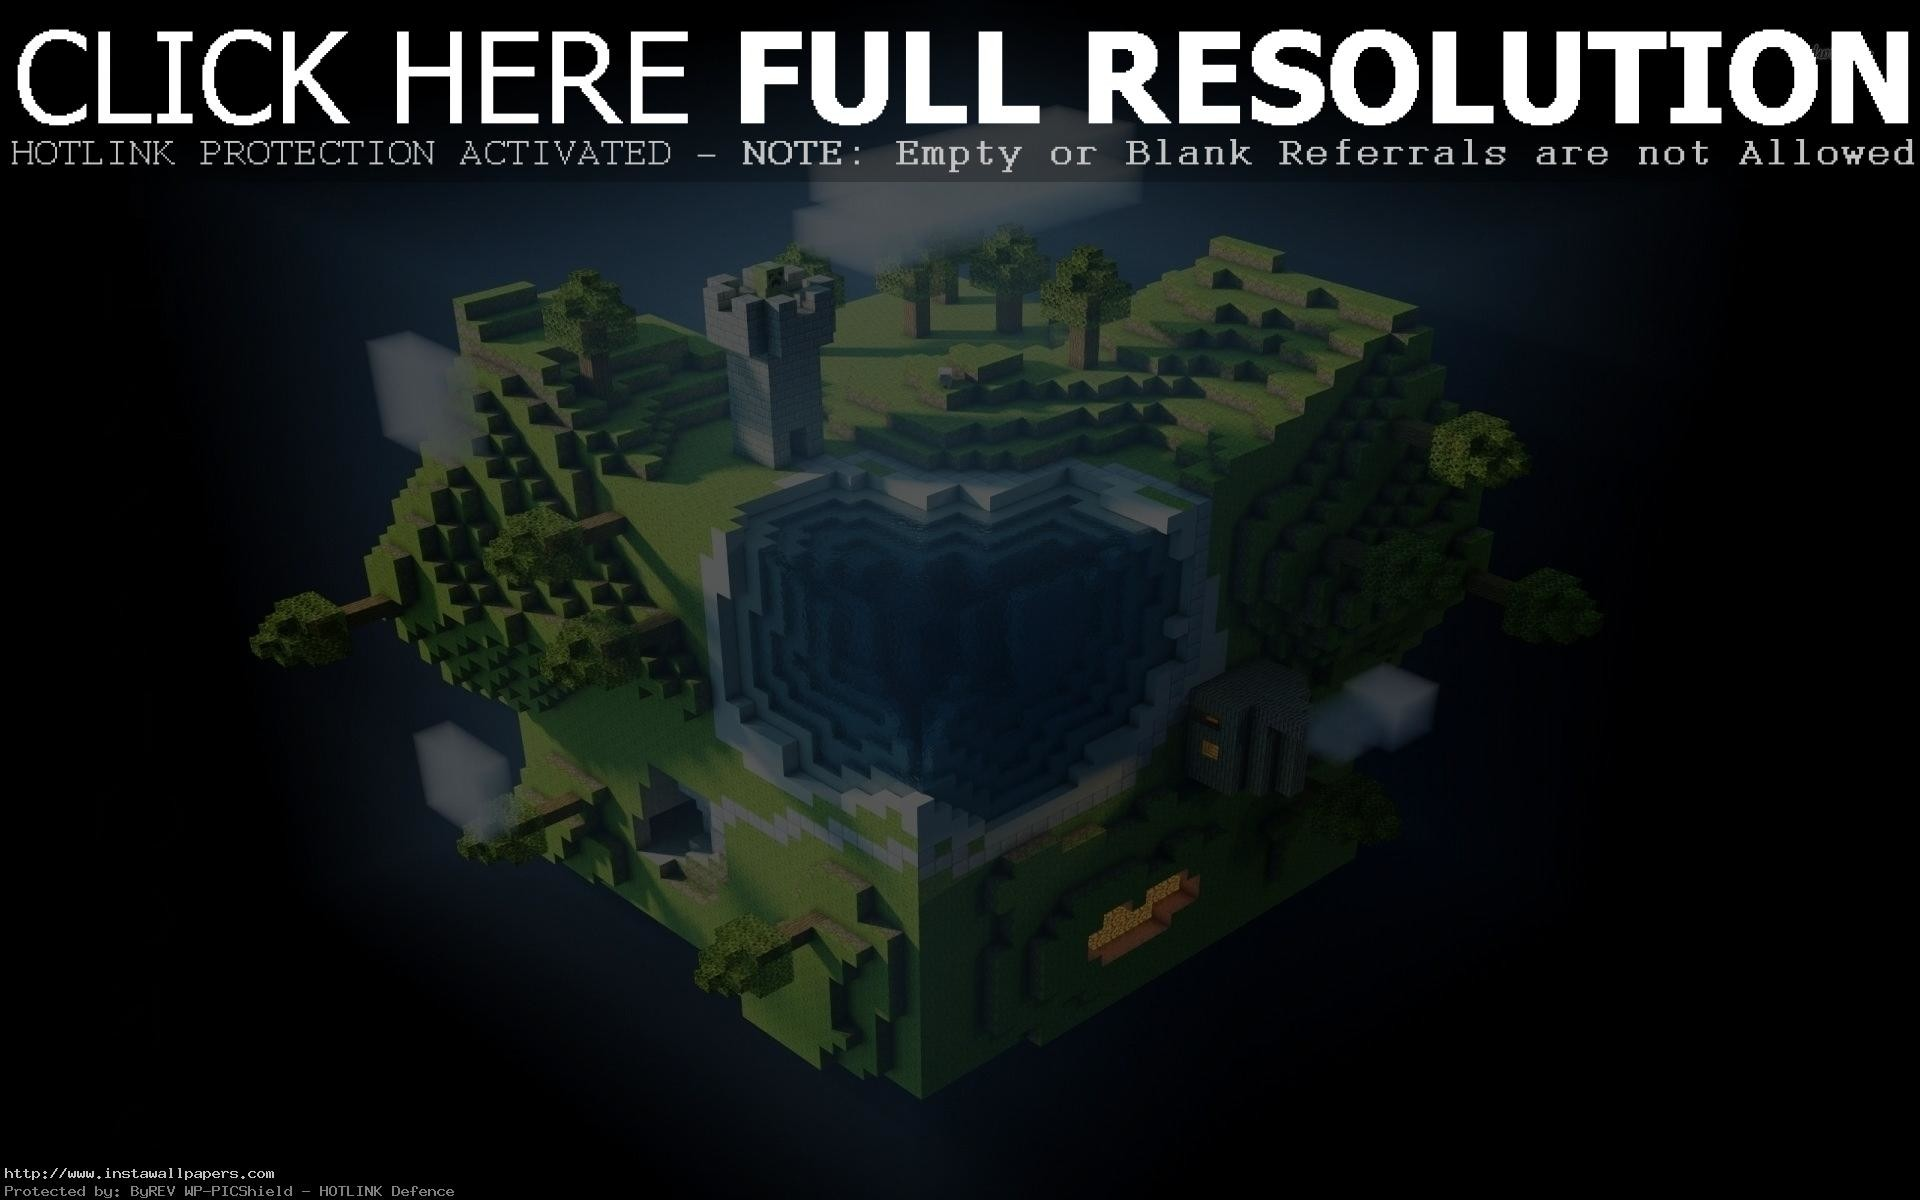 Wonderful Wallpaper Minecraft Tablet - 1135059-gorgerous-turtwig-wallpaper-1920x1200-photo  Photograph_783966.jpg